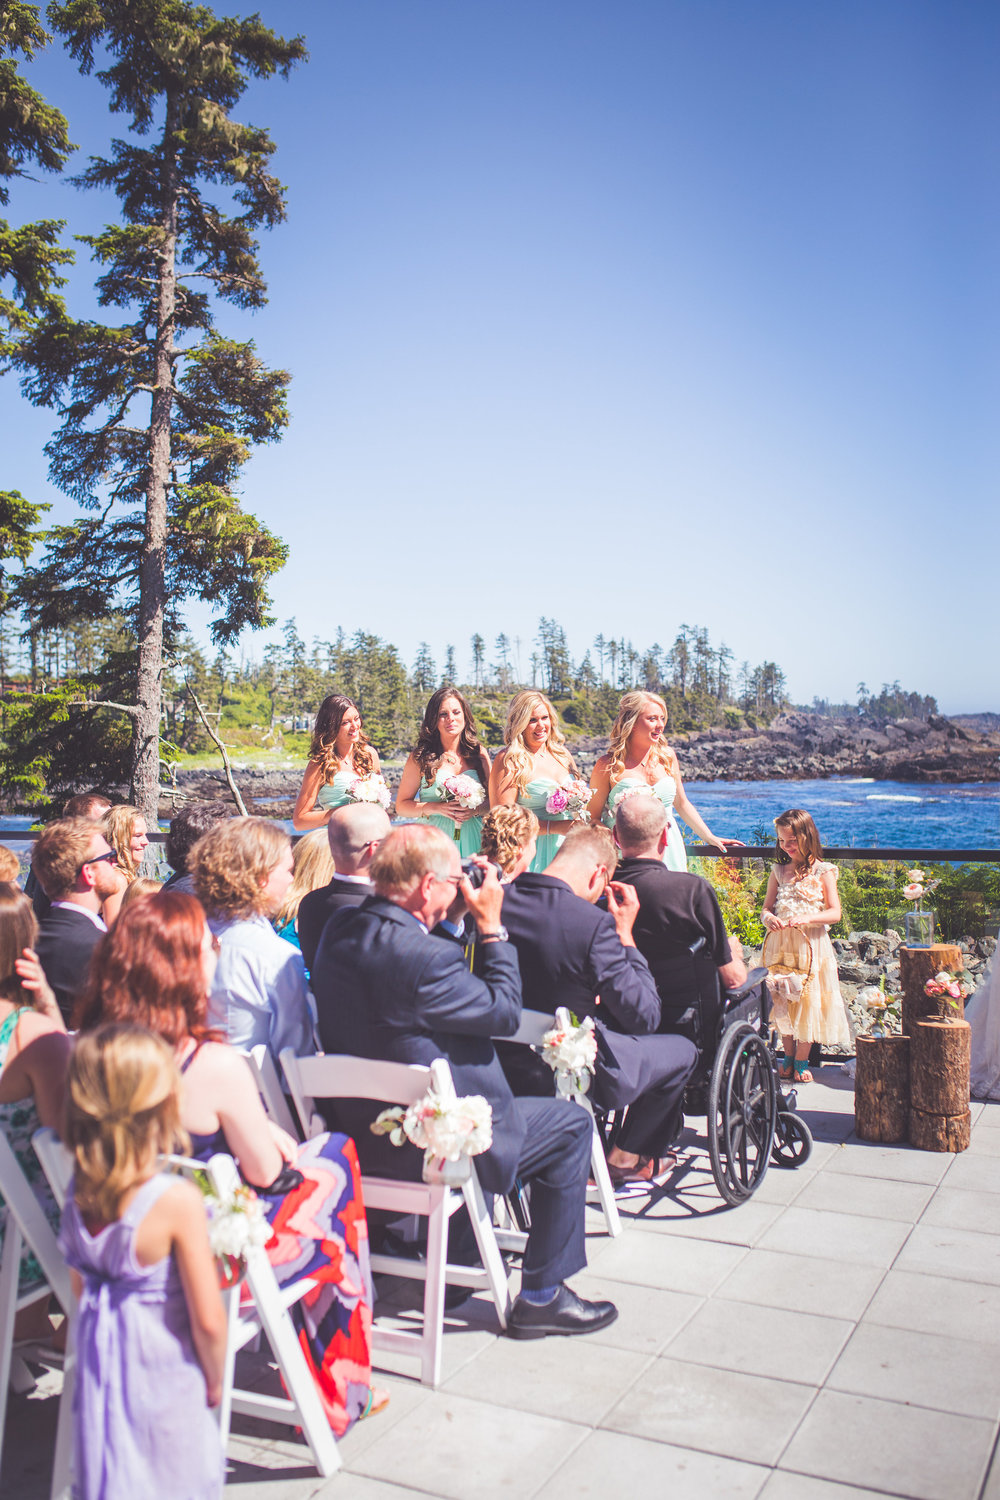 black-rock-oceanfront-resort-weddings-ucluelet-bc-courtney-jake-194.jpg